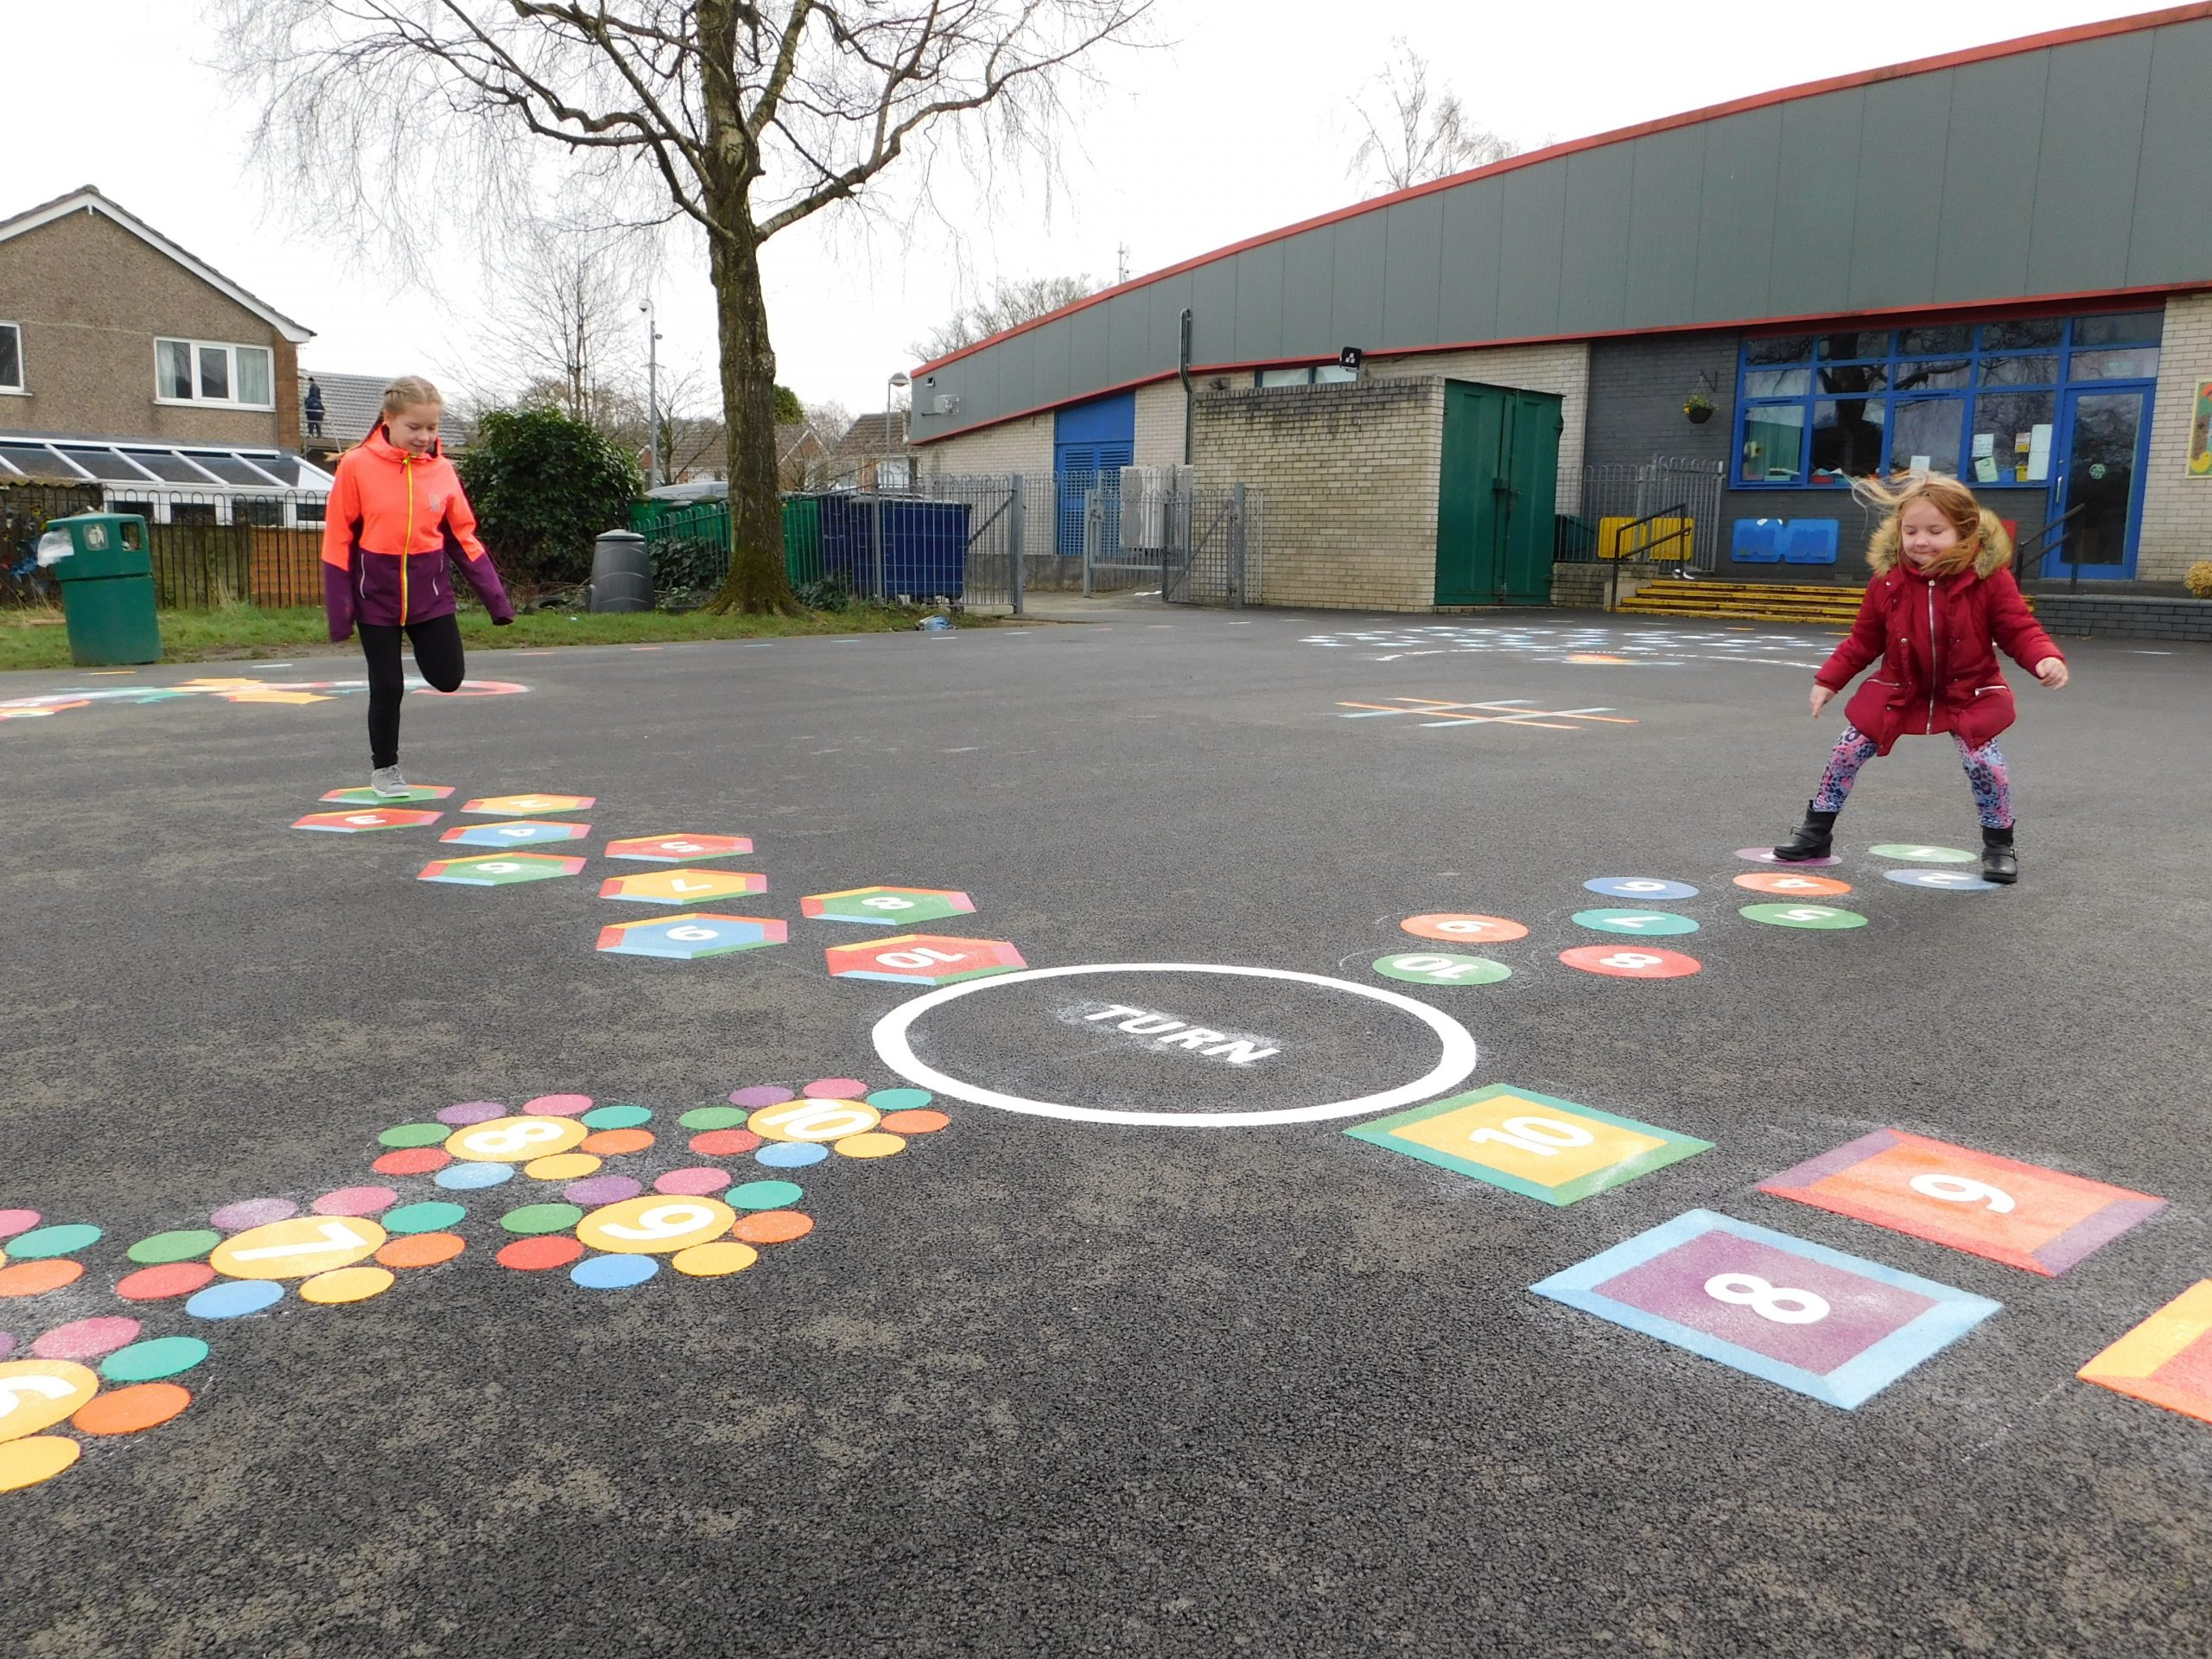 Teaching creative subjects in the playground